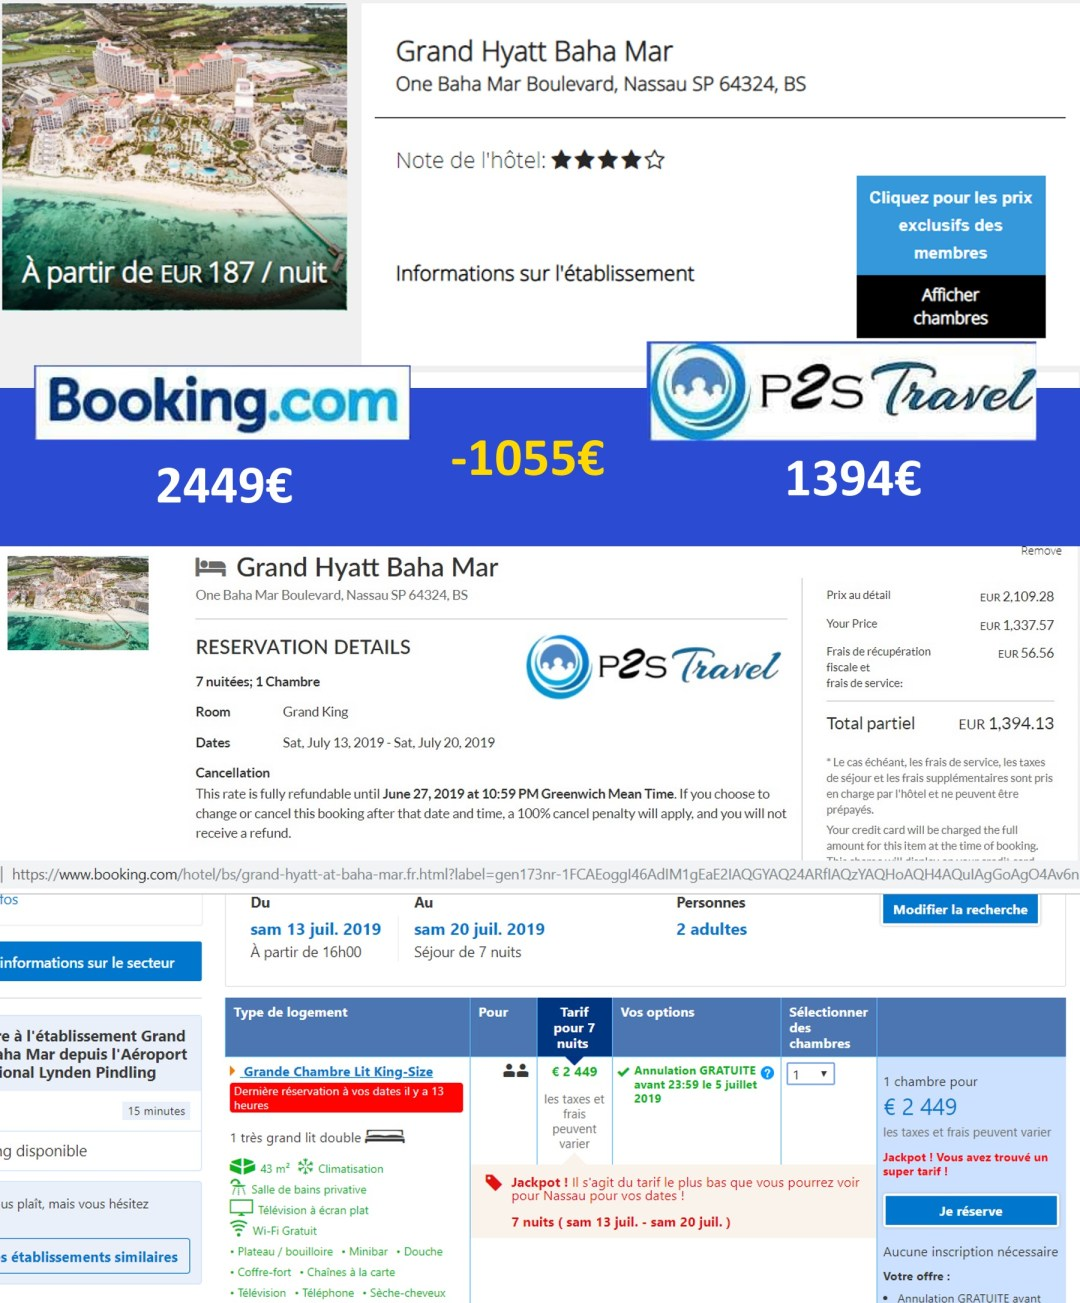 exemple comparatif tarif entre p2s travel et booking